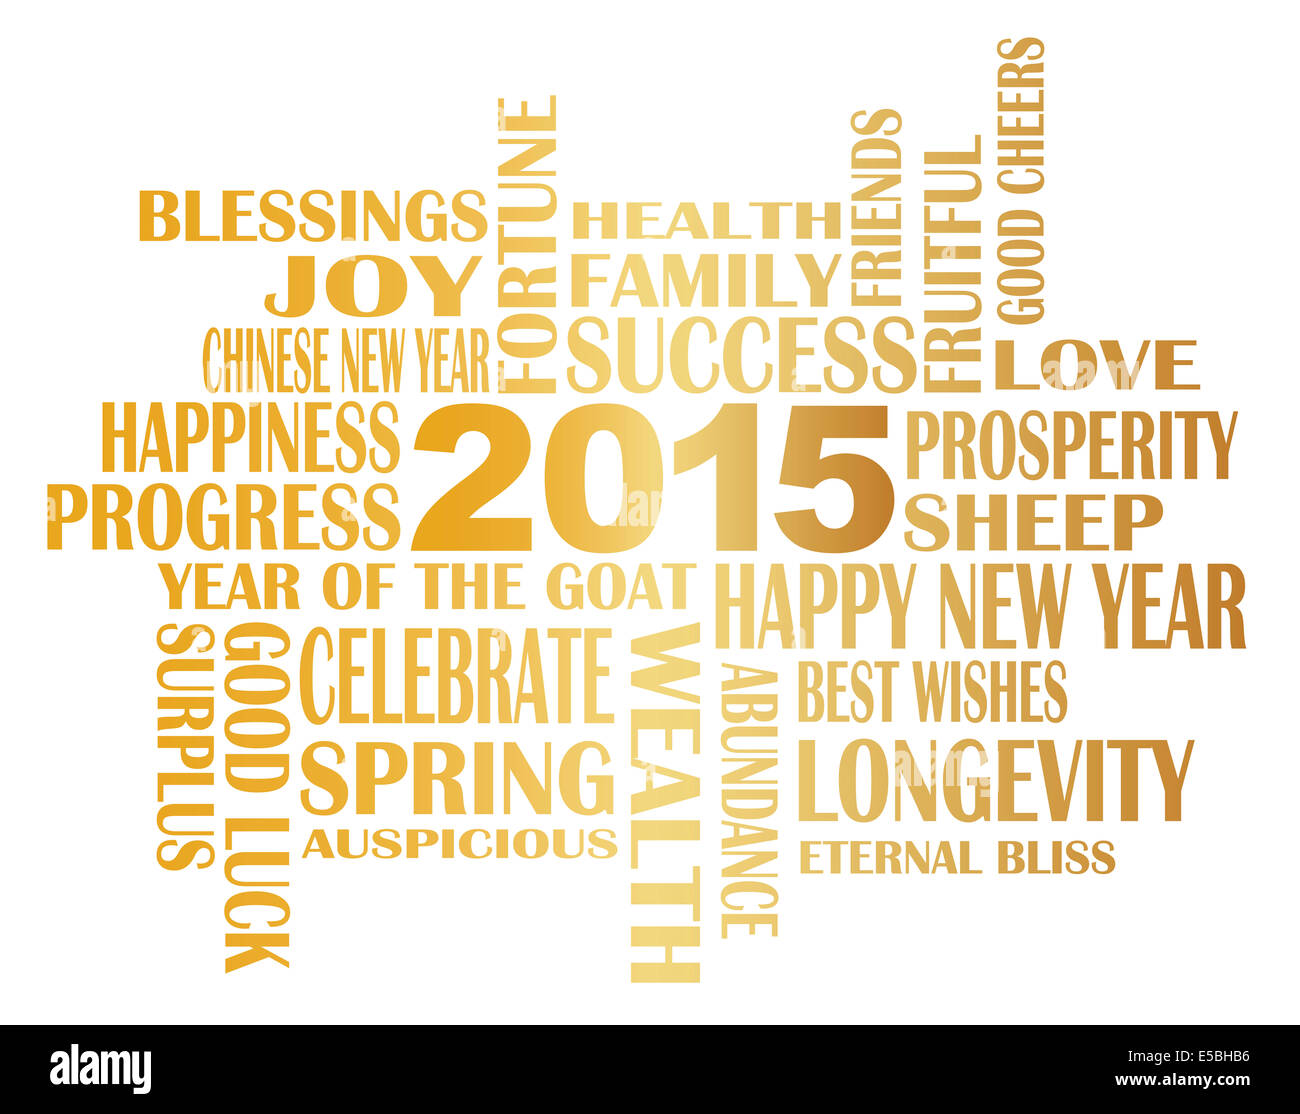 2015 Chinese Lunar New Year English Greetings Text Wishing Health Good Fortune Prosperity Happiness in the Year - Stock Image